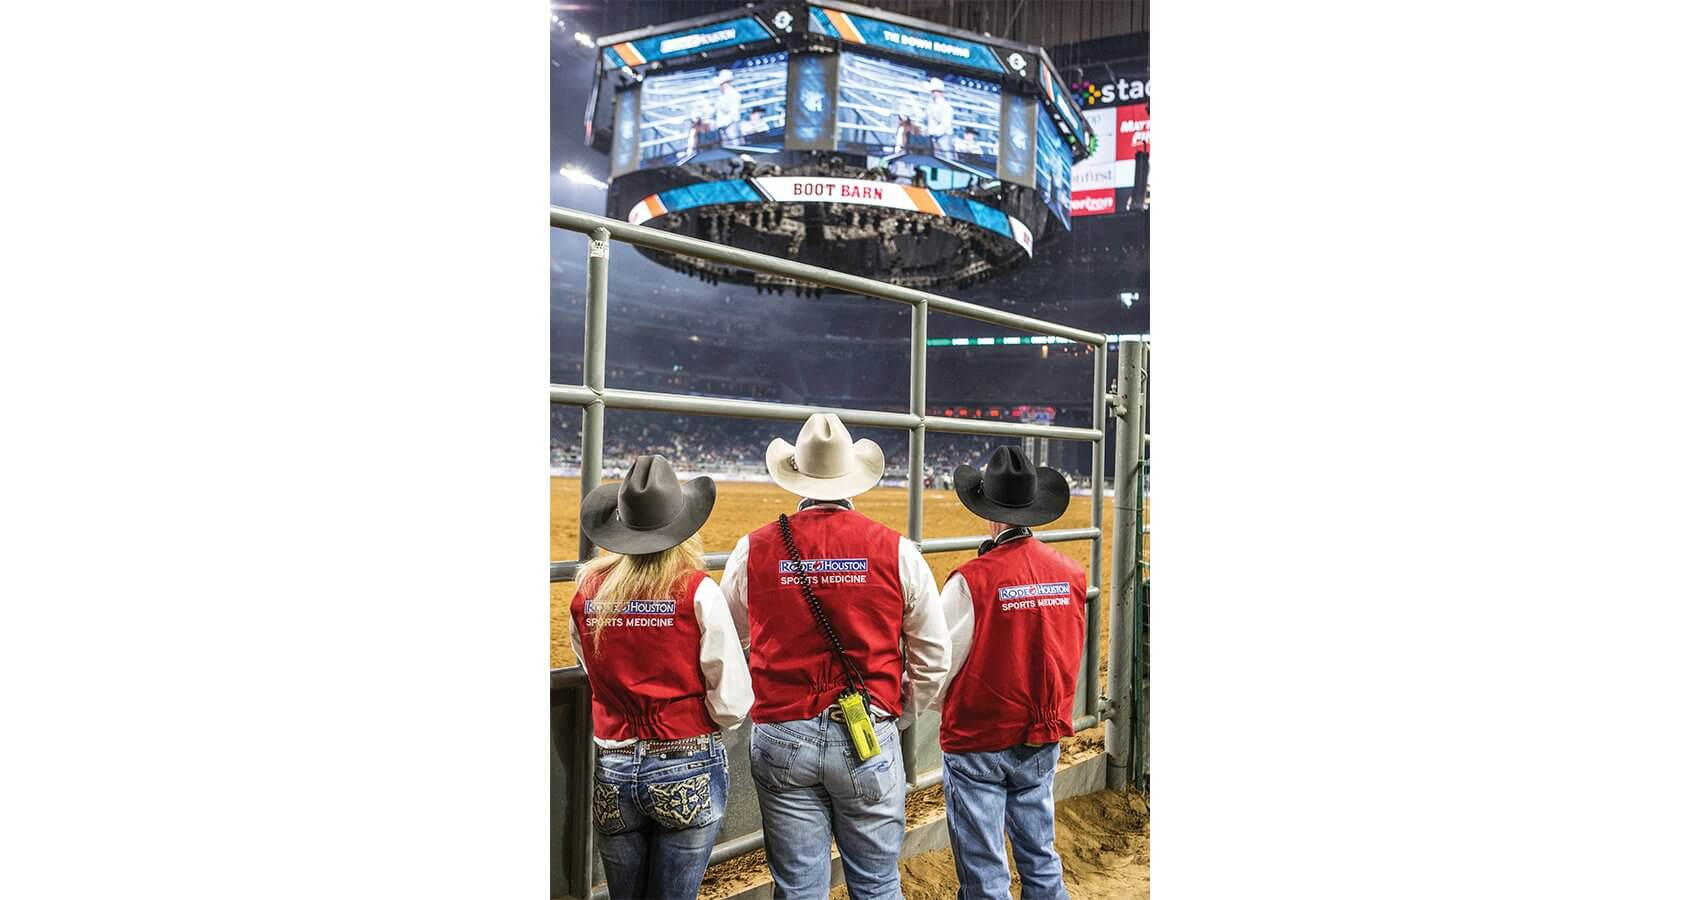 RodeoHouston sports medicine staff watch the competition from the sidelines, always ready to assist the cowboys.